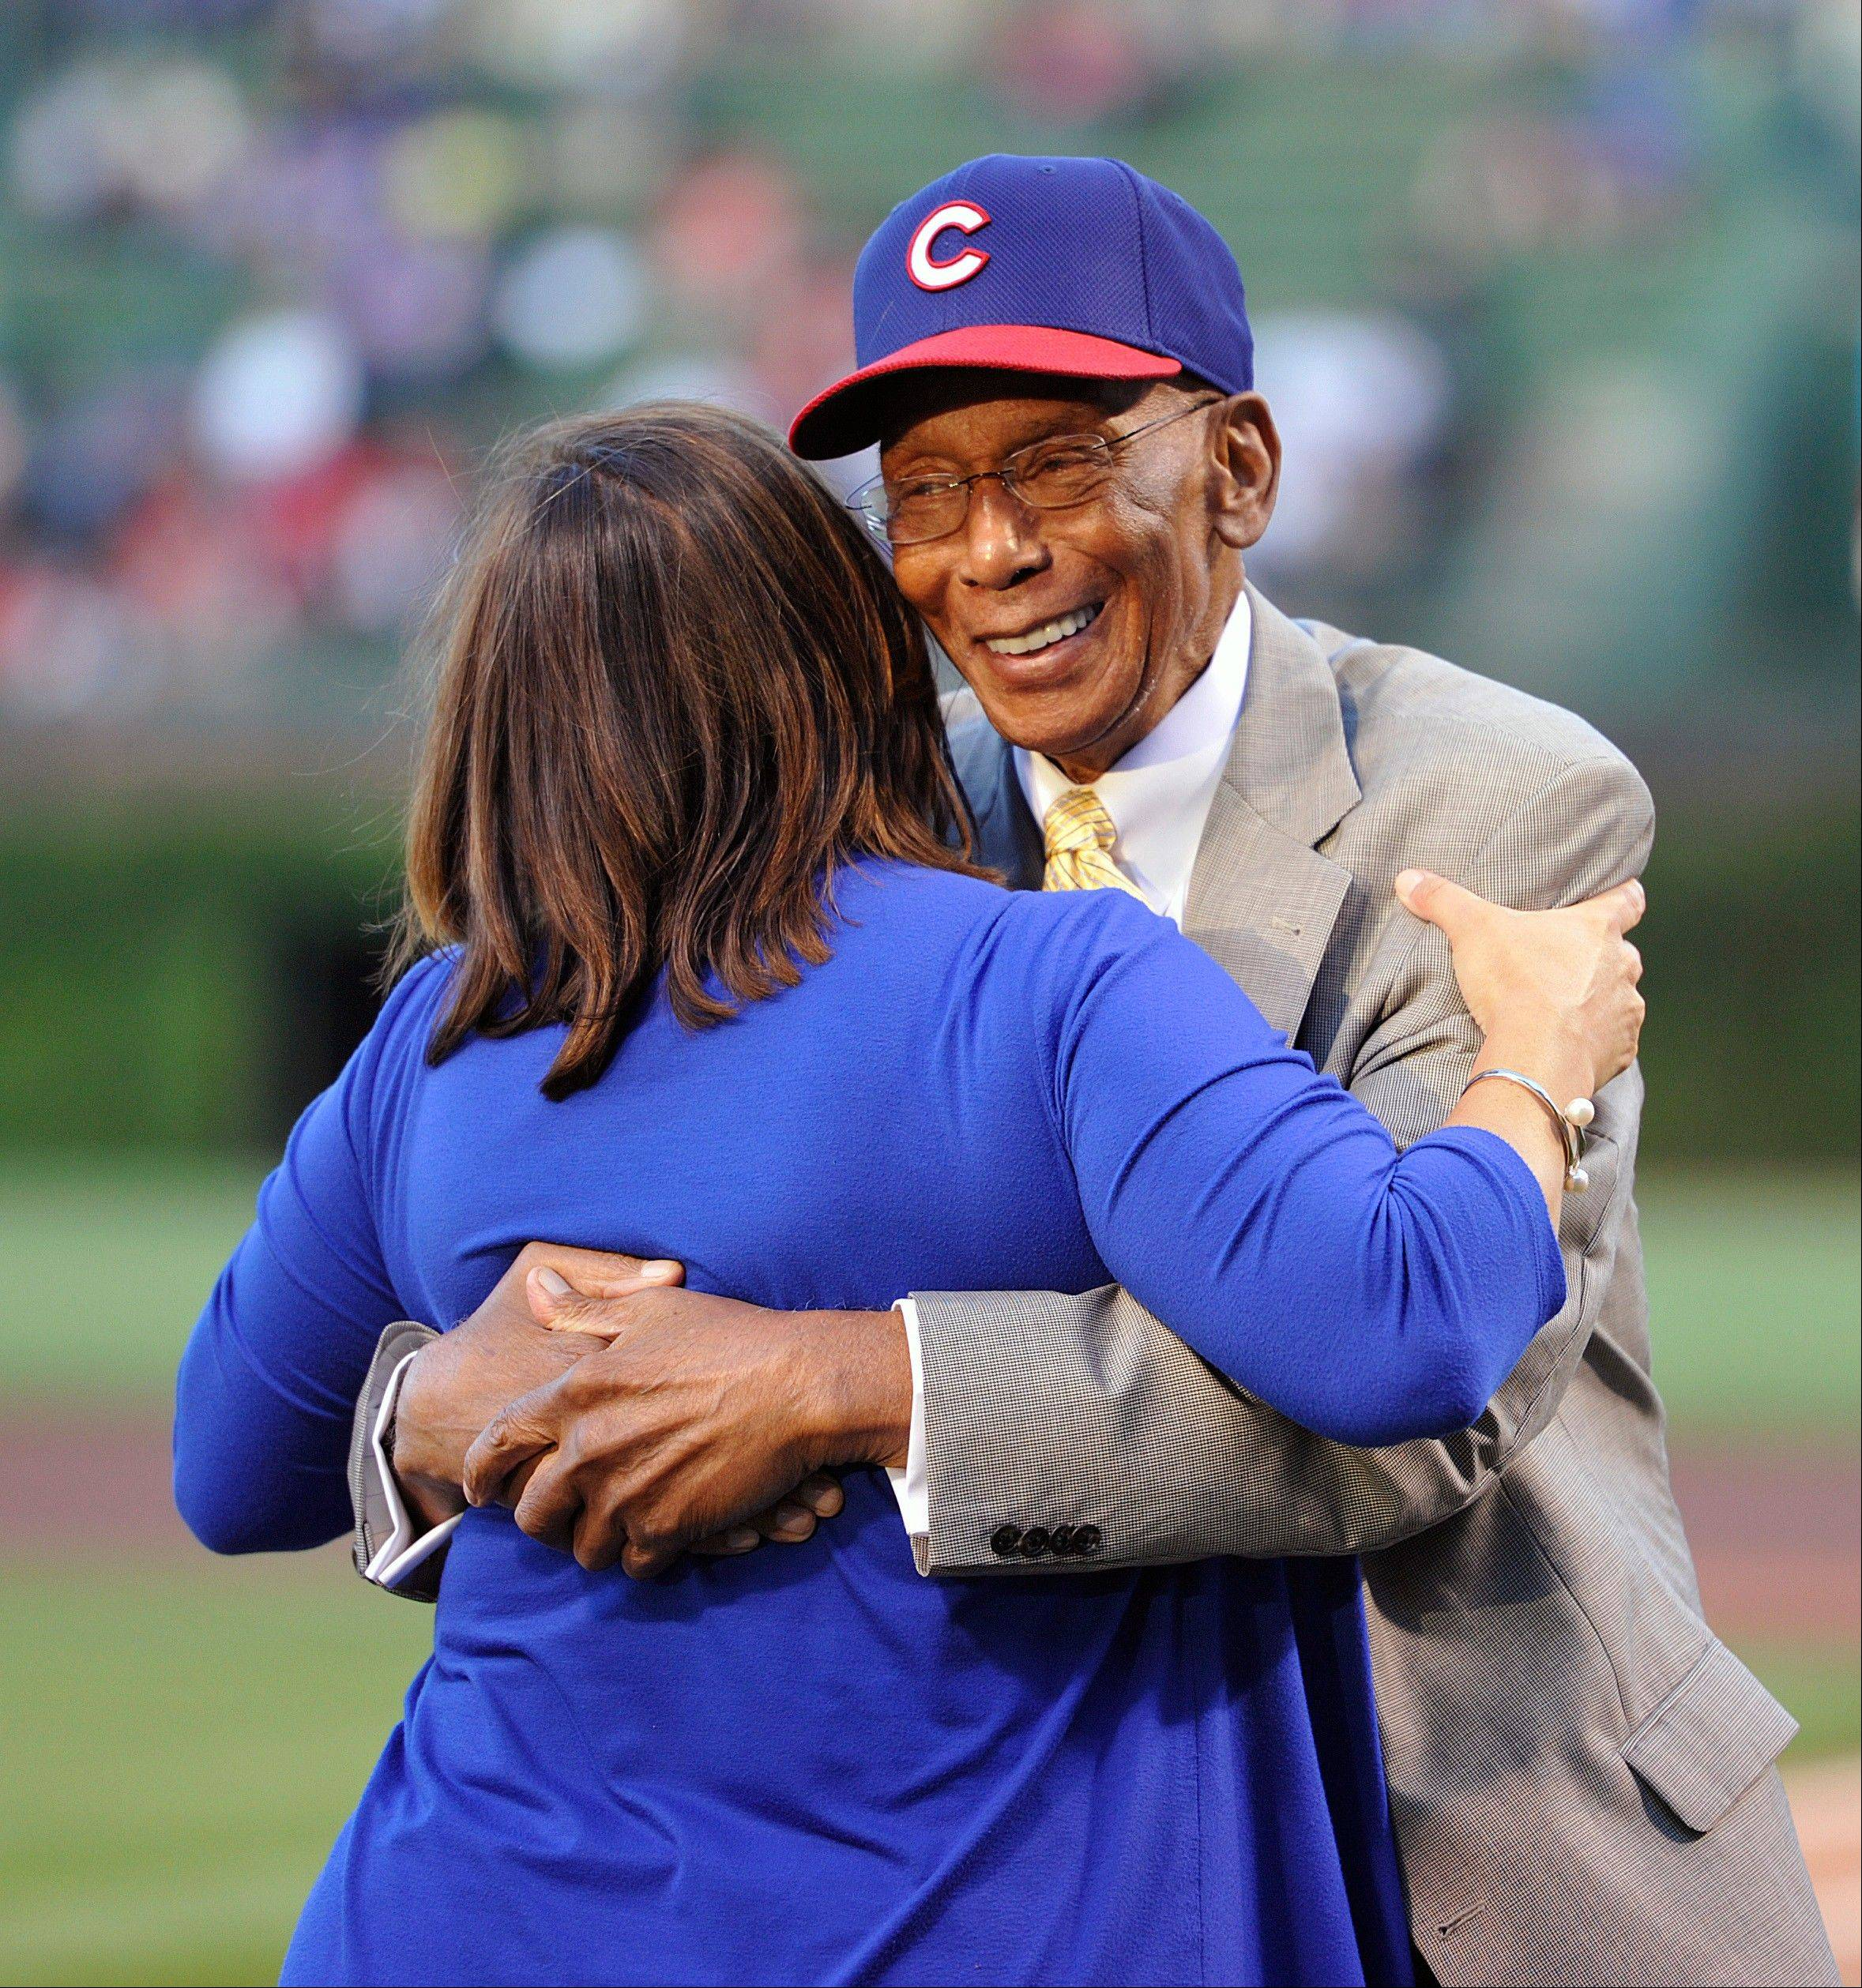 Former Chicago Cubs first baseman Ernie Banks dances with Laura Ricketts, co-owner of the Cubs, during a ceremony at Wrigley Field honoring Banks, who will receive the Presidential Medal of Freedom later this year.